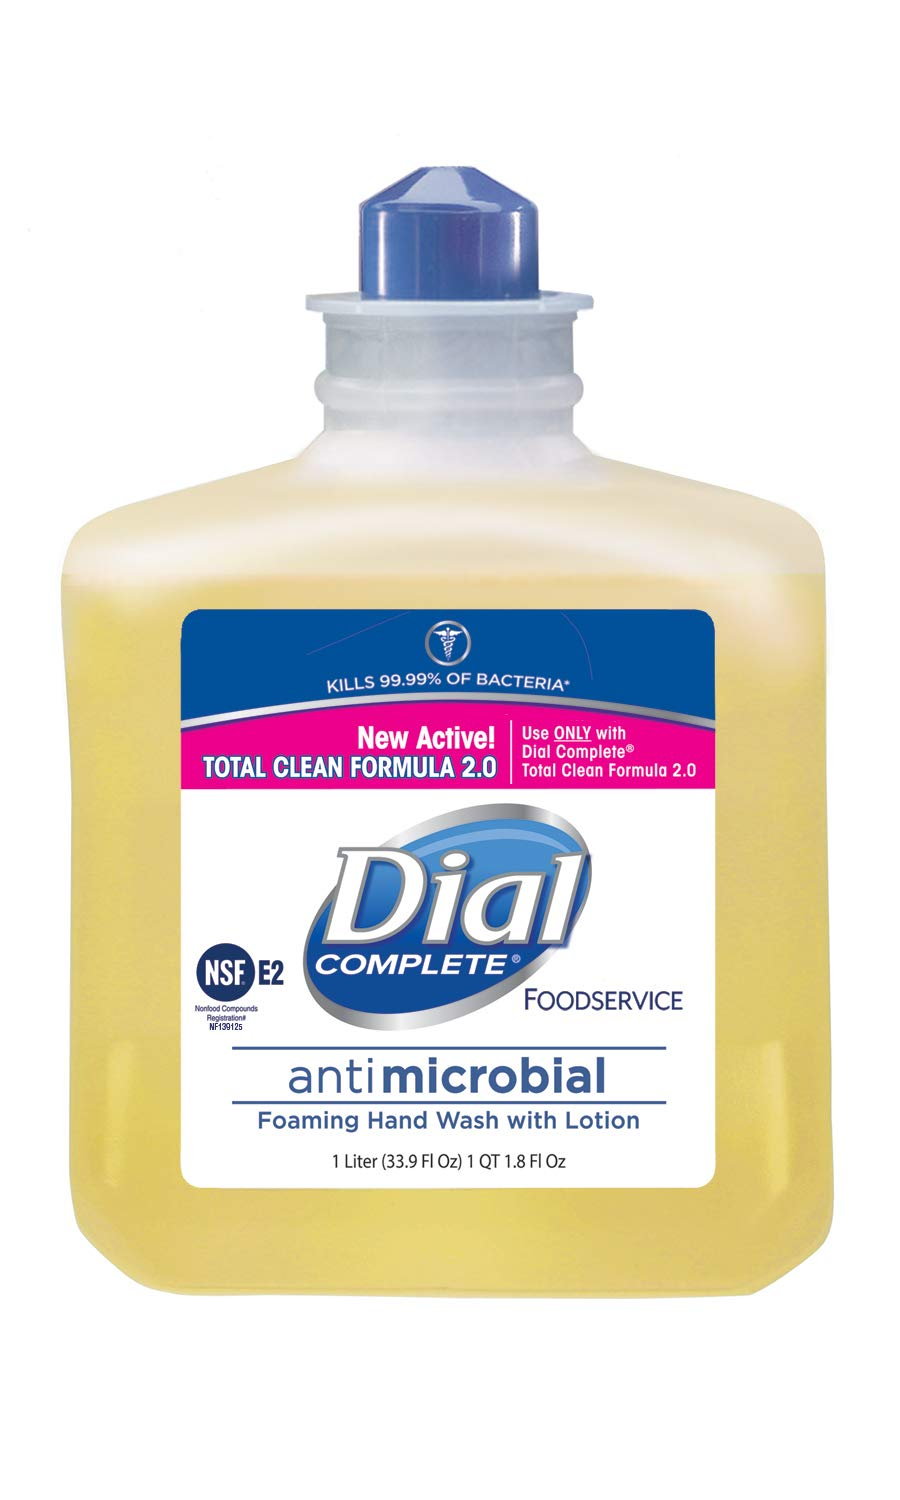 Dial Complete 00034 1 liter Refill Cartridge, Antimicrobial Foaming Hand Soap (Pack of 4)